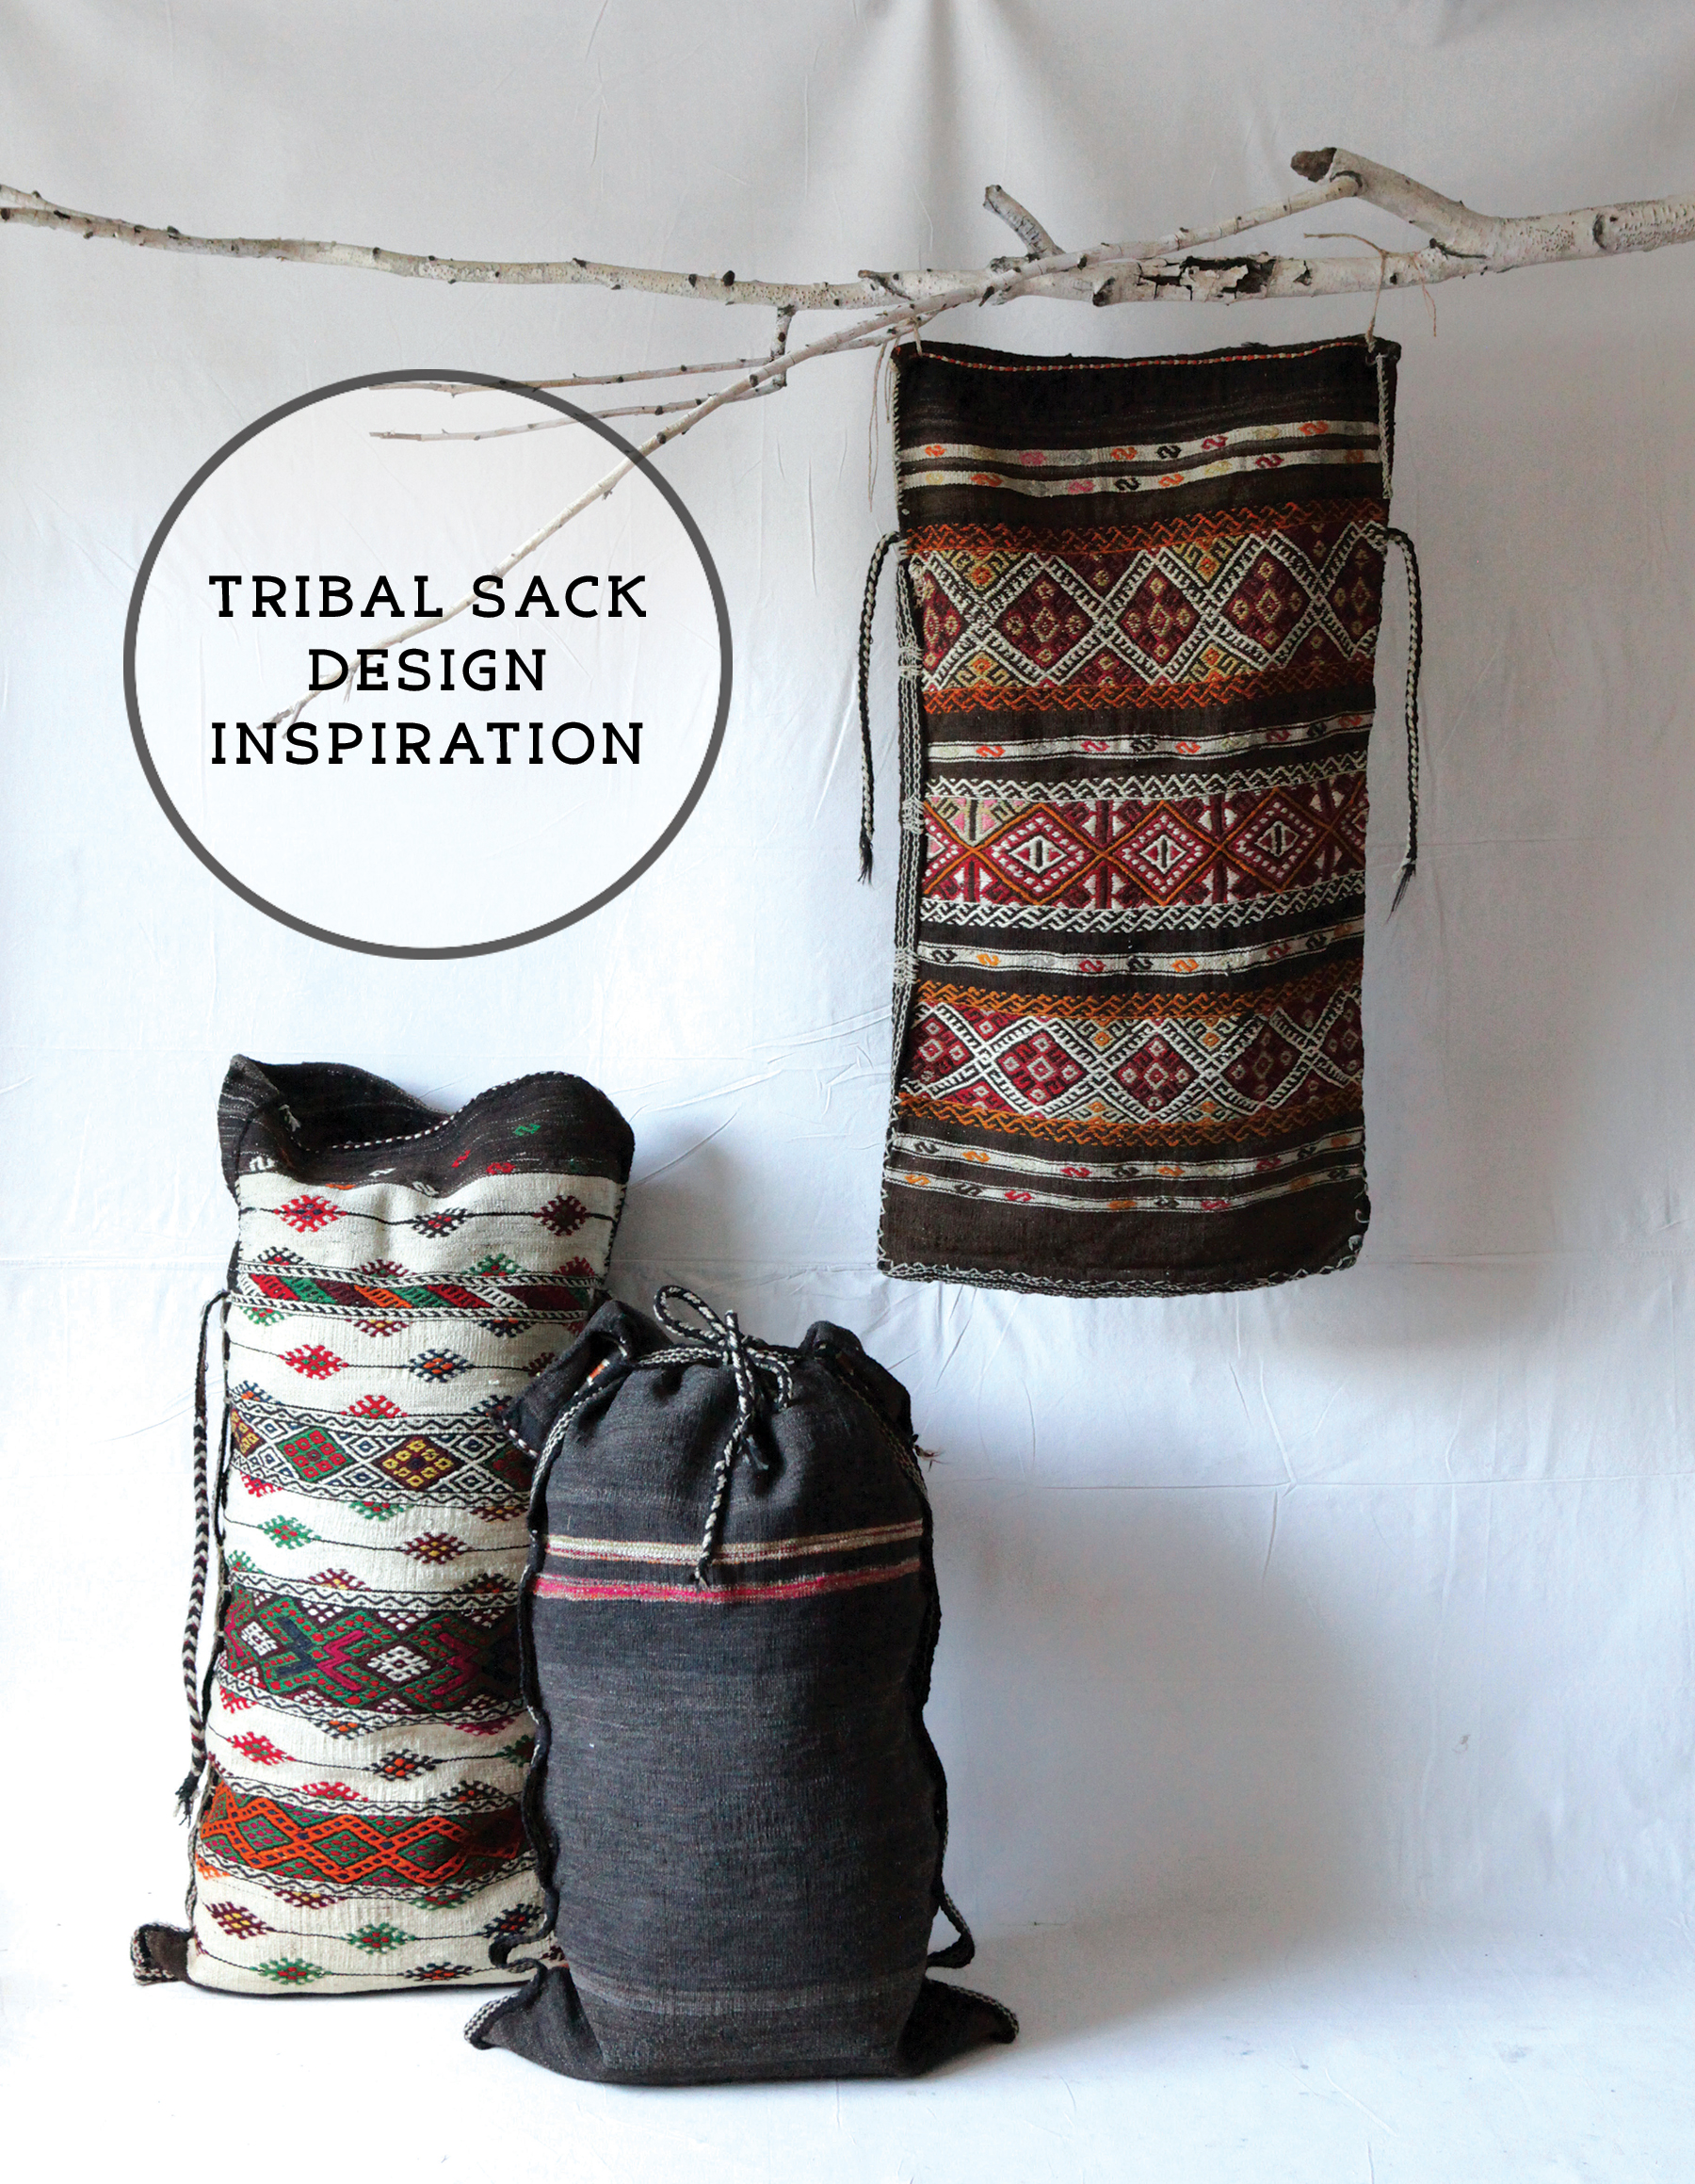 design inspiration with kilim bags